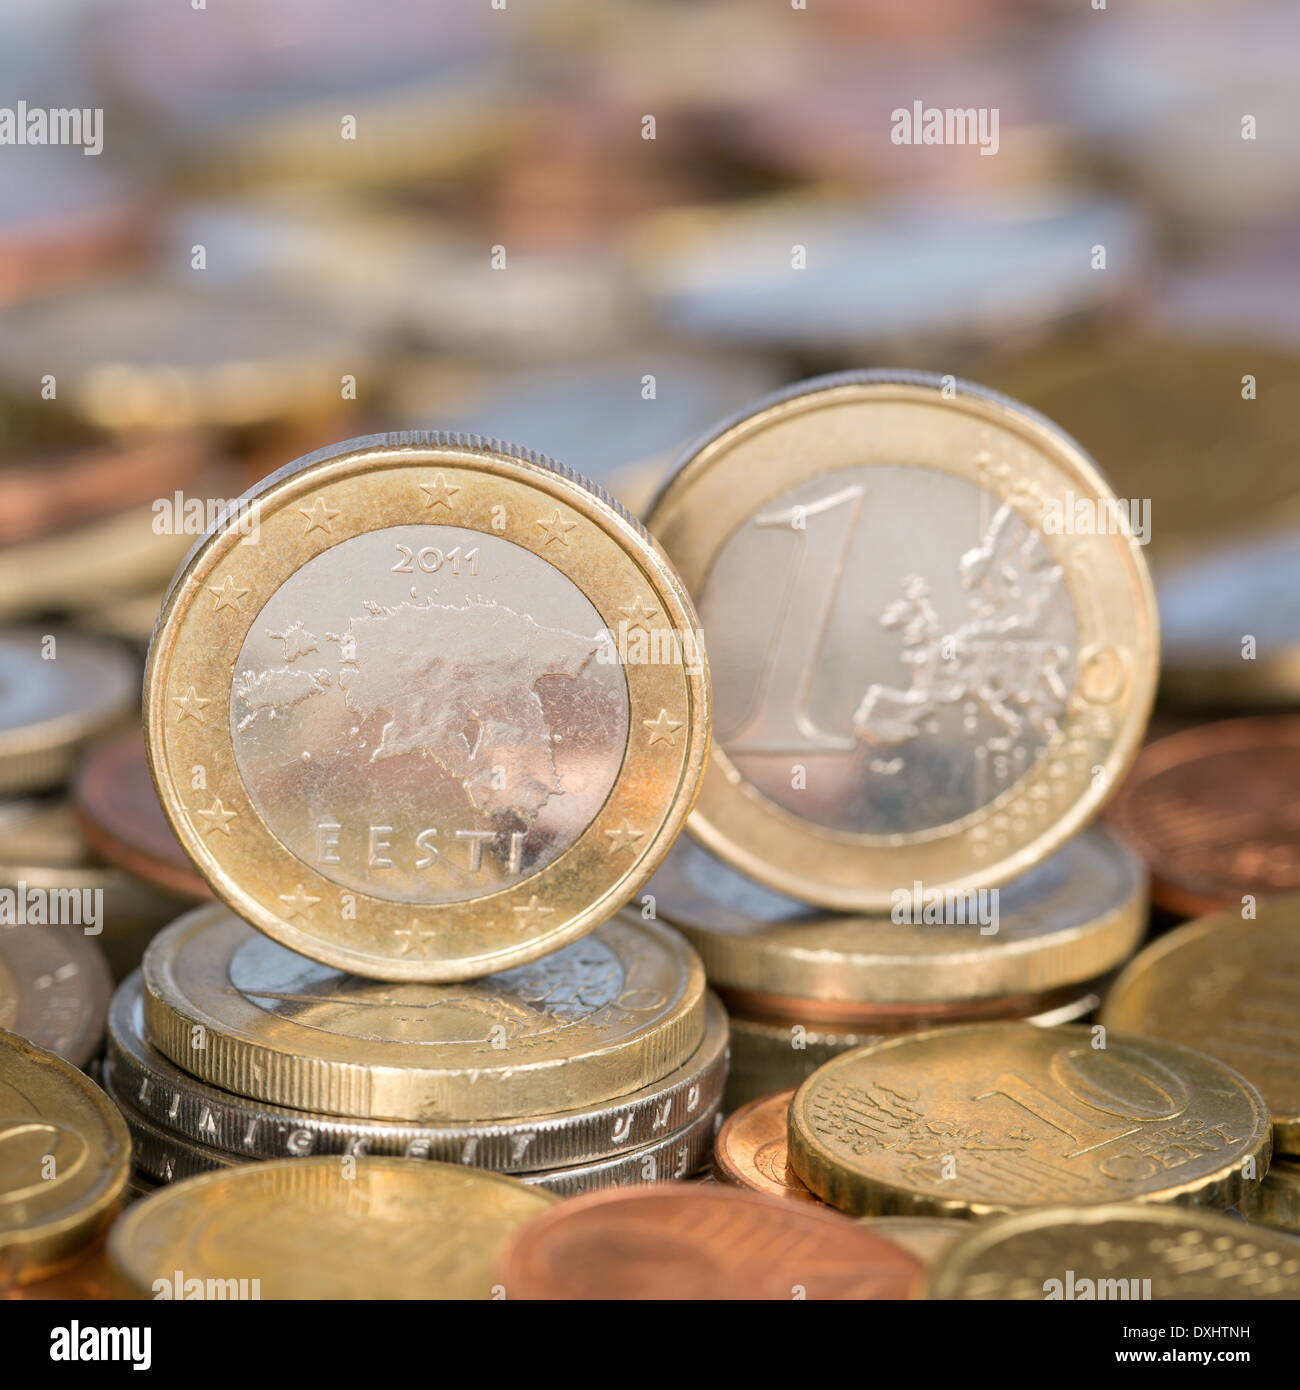 A one Euro coin from the European Union currency member country Estonia - Stock Image